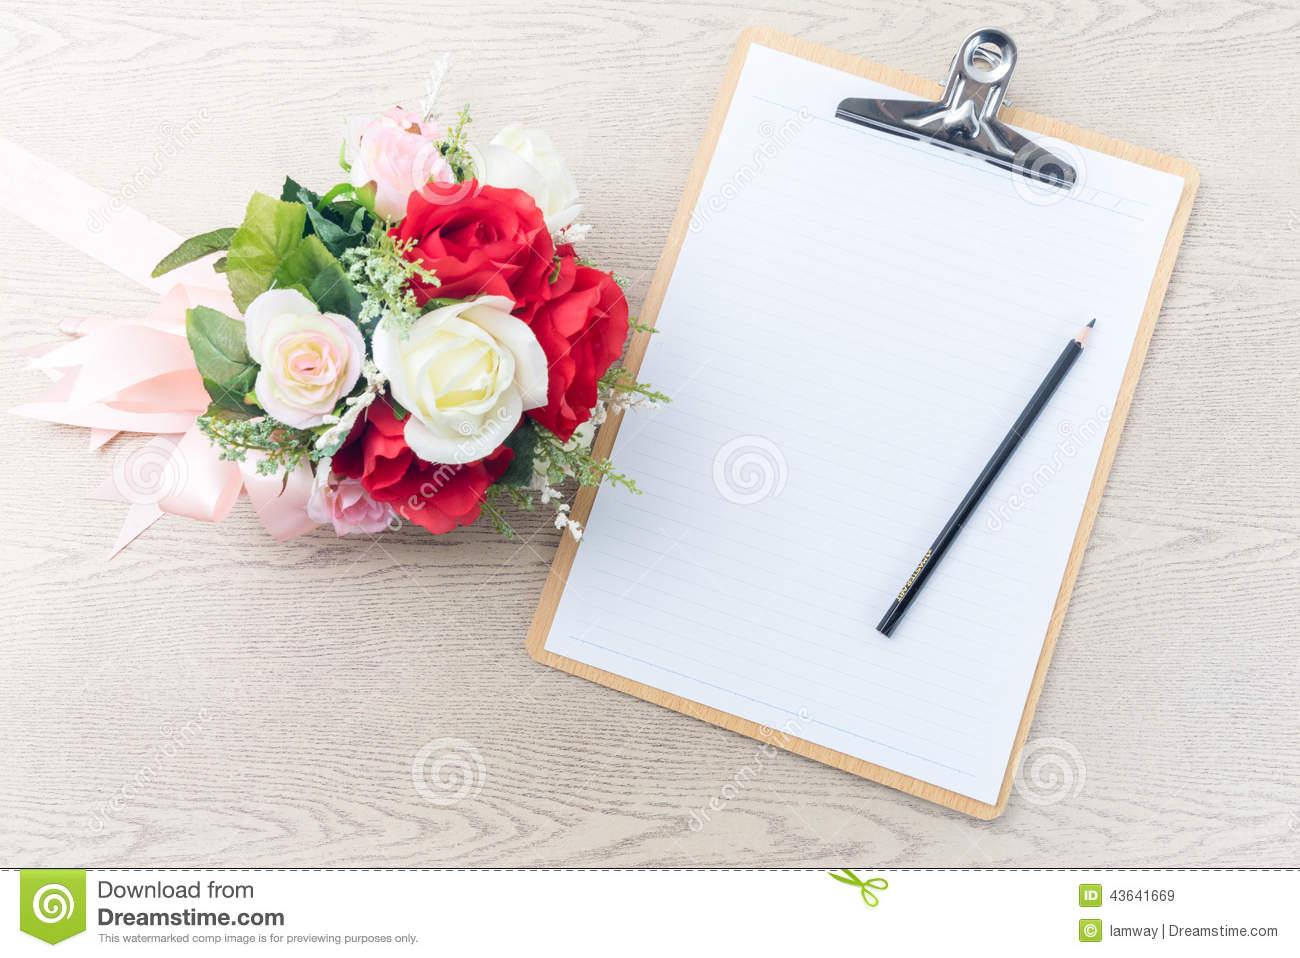 Wooden Clipboard Attach Planning Paper With Pencil Beside